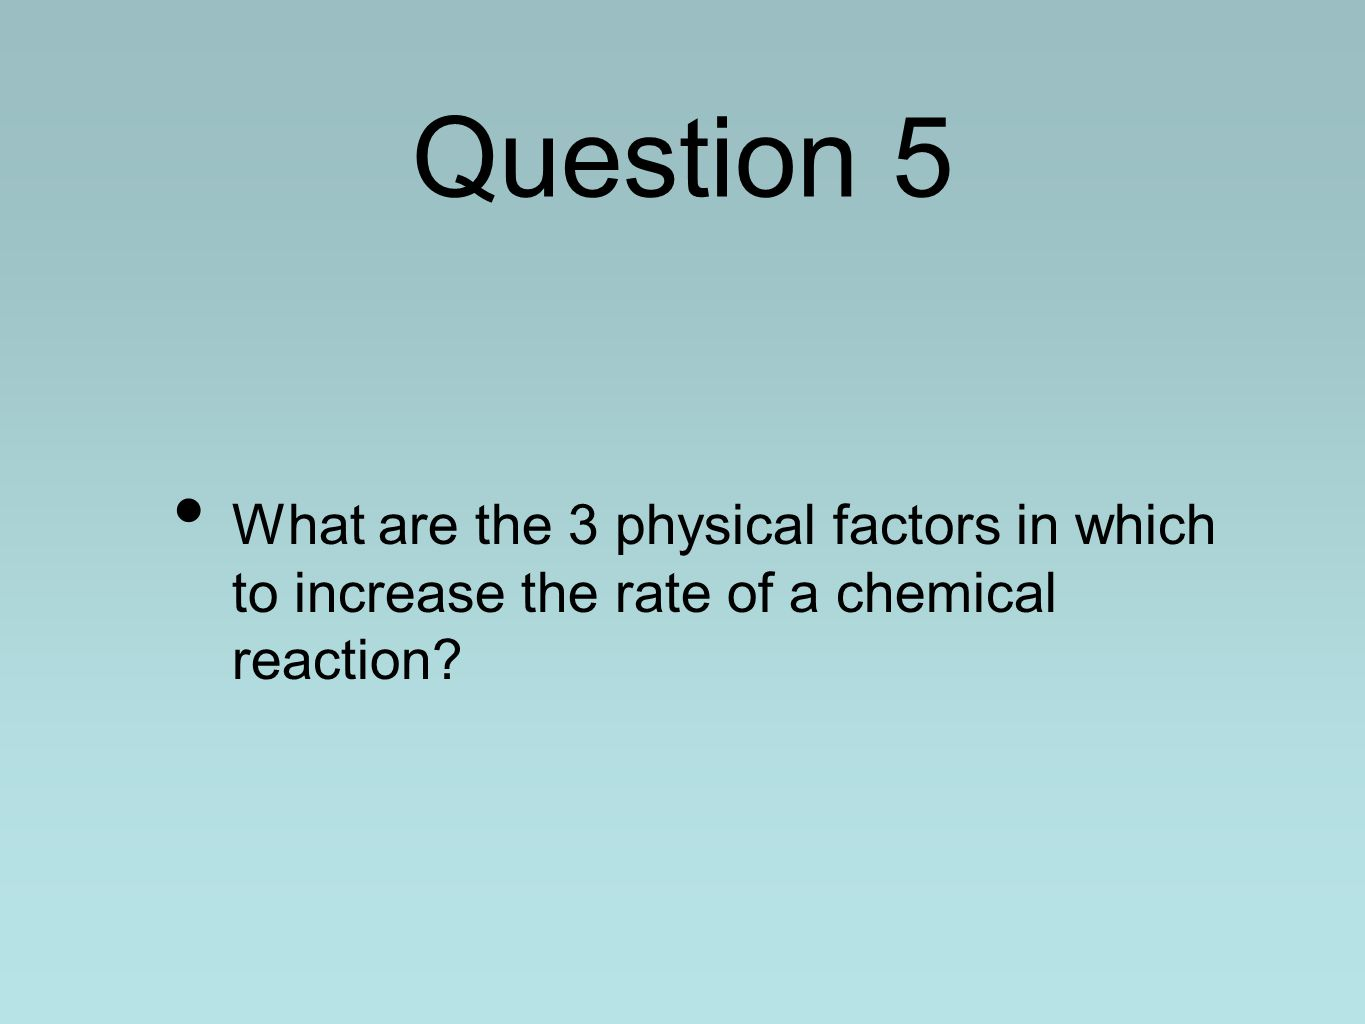 Question 6 You combine 2 elements, sodium (Na) and chlorine (Cl), to make sodium chloride (NaCl).